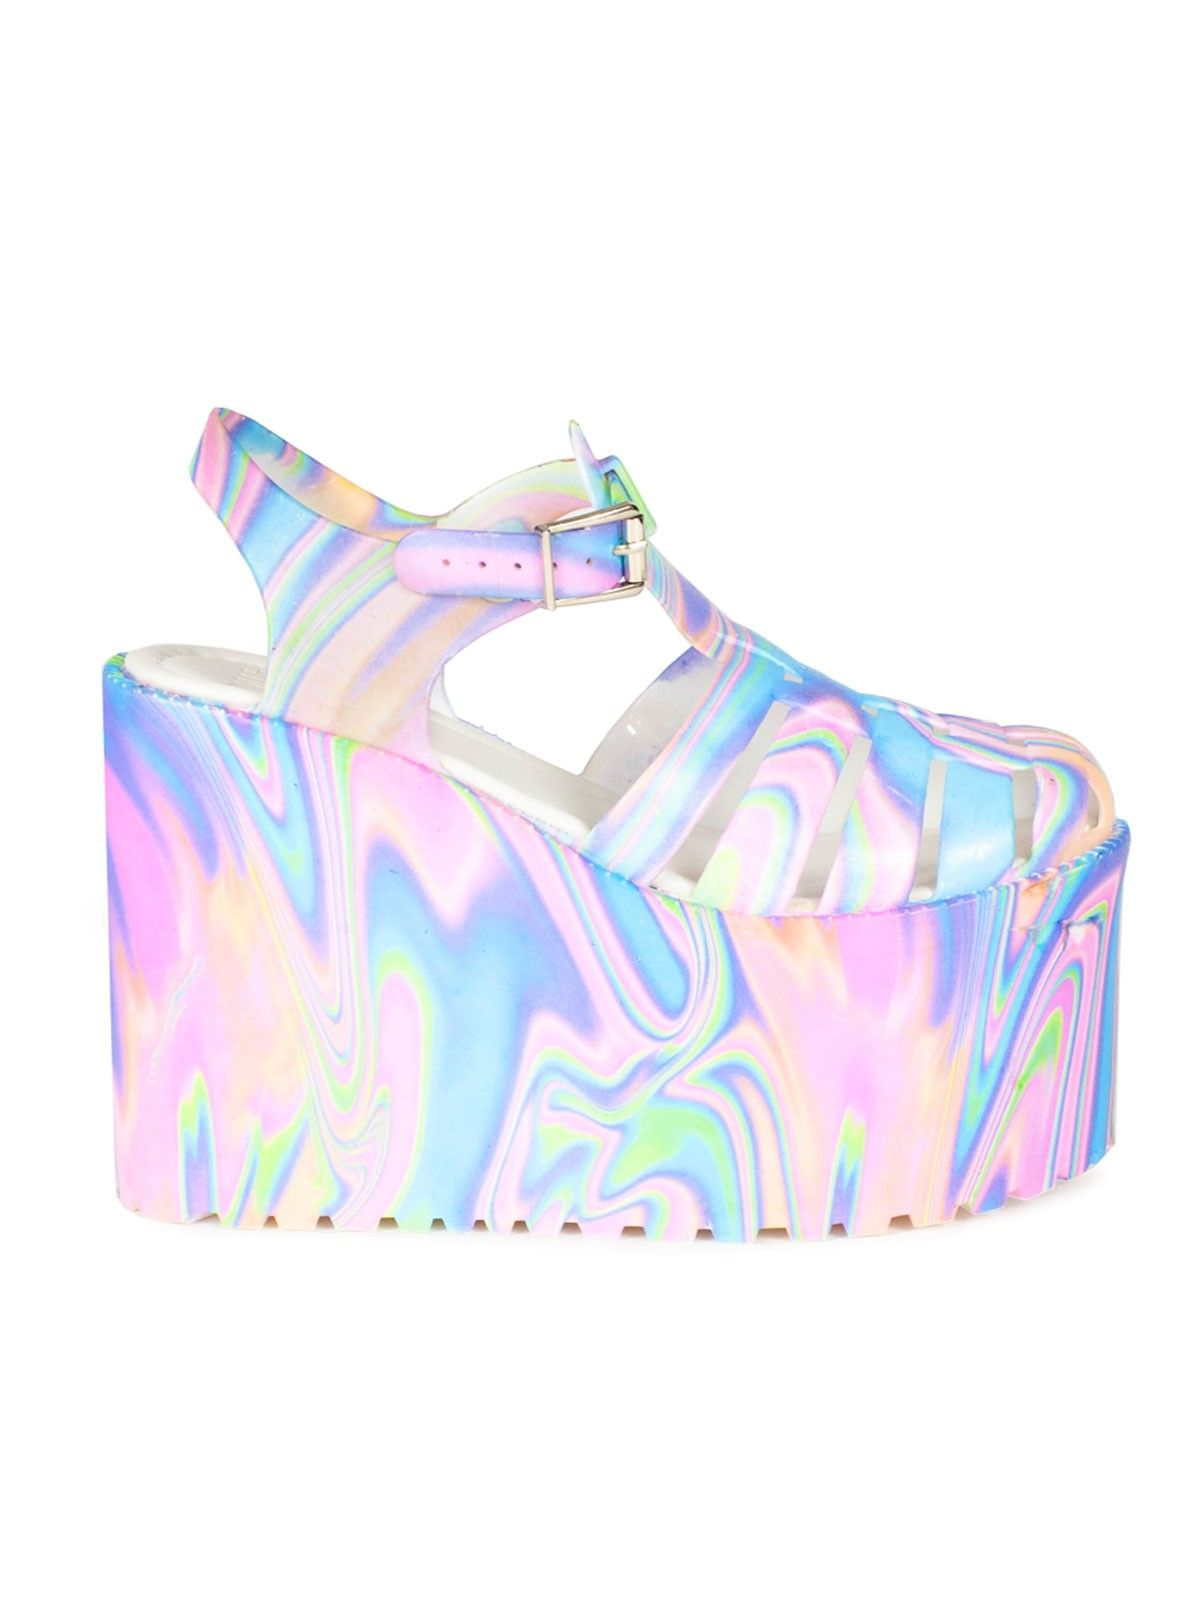 Unif | hella jelly platforms | The christmas, Platform and ...